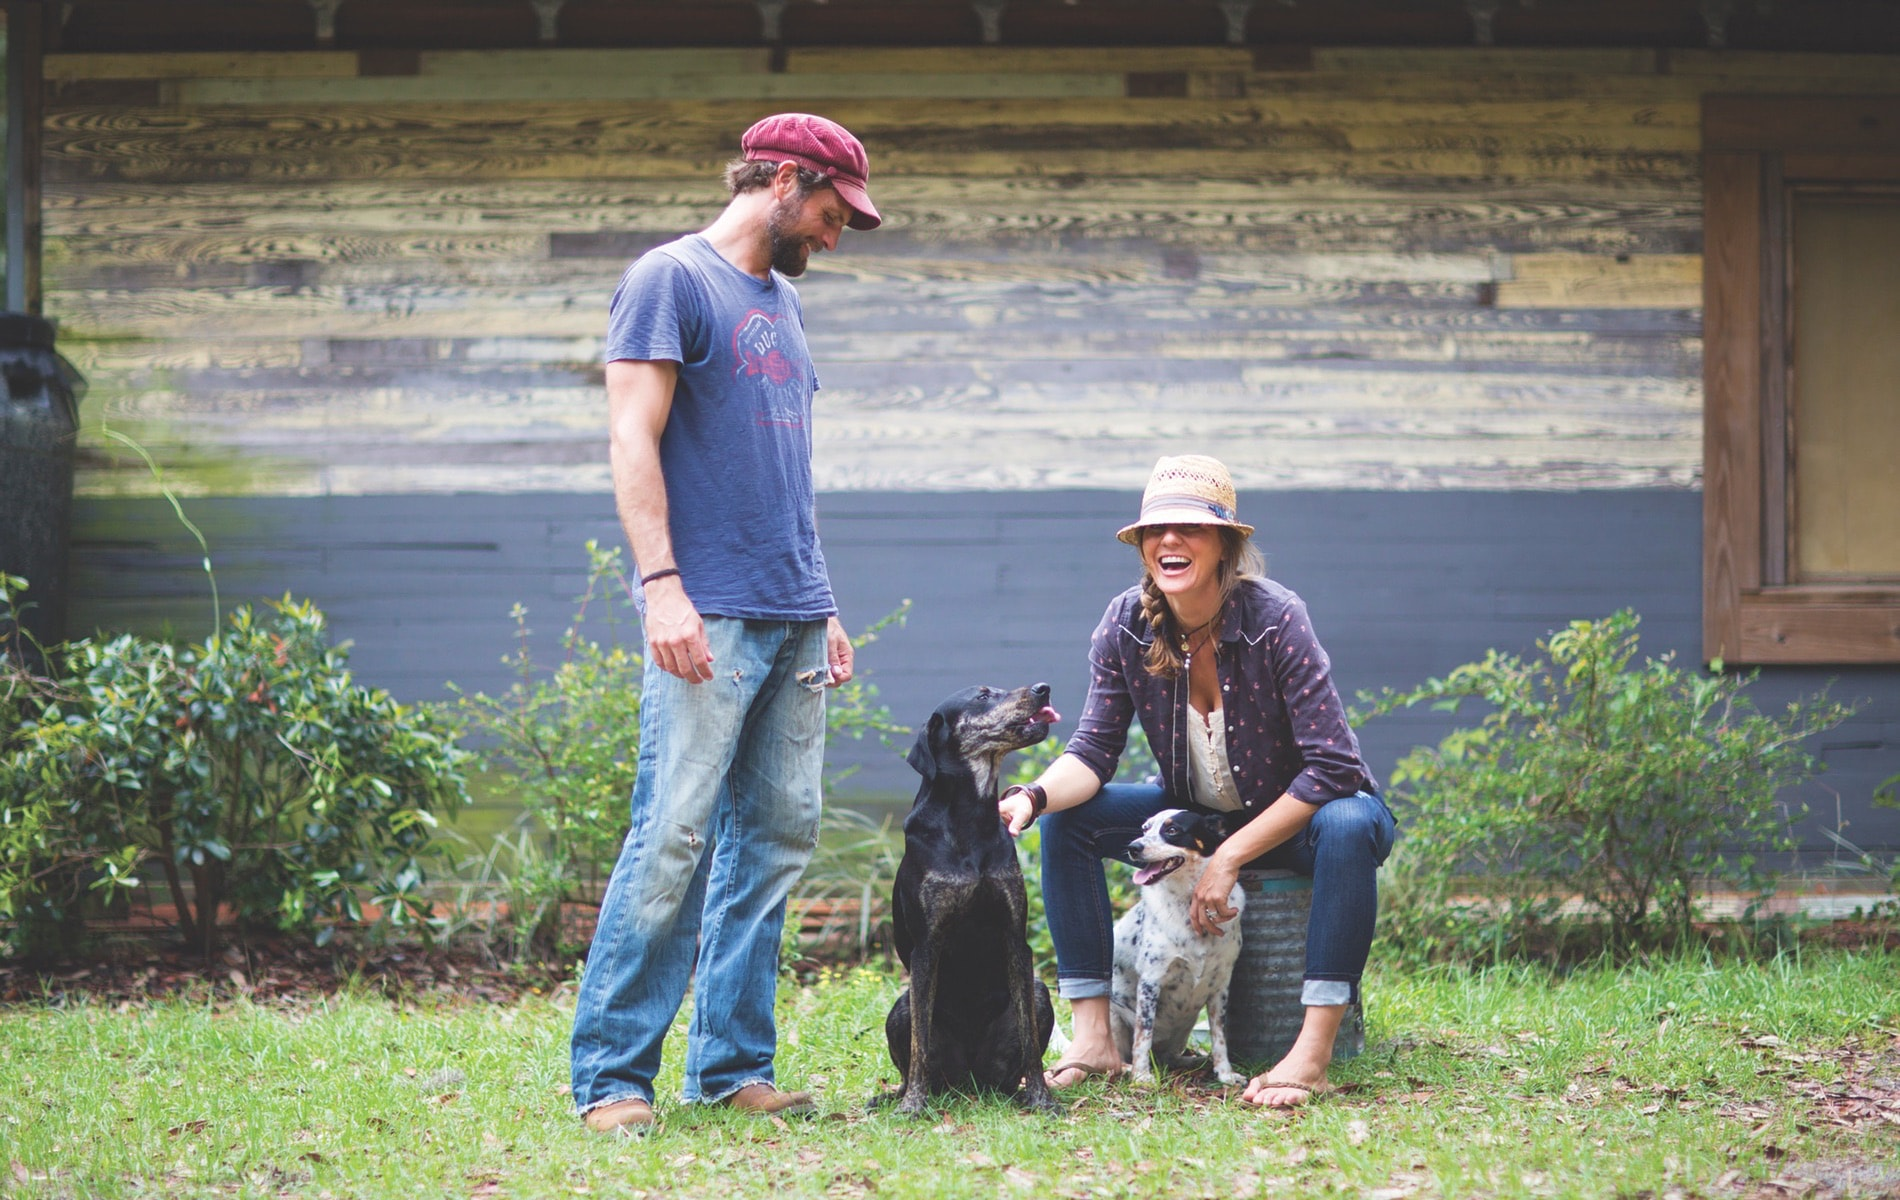 Lastrå founder Arix Zalace and Jenifer Kuntz with their dogs, Japhy and Kali | Photo by Sean Murphy